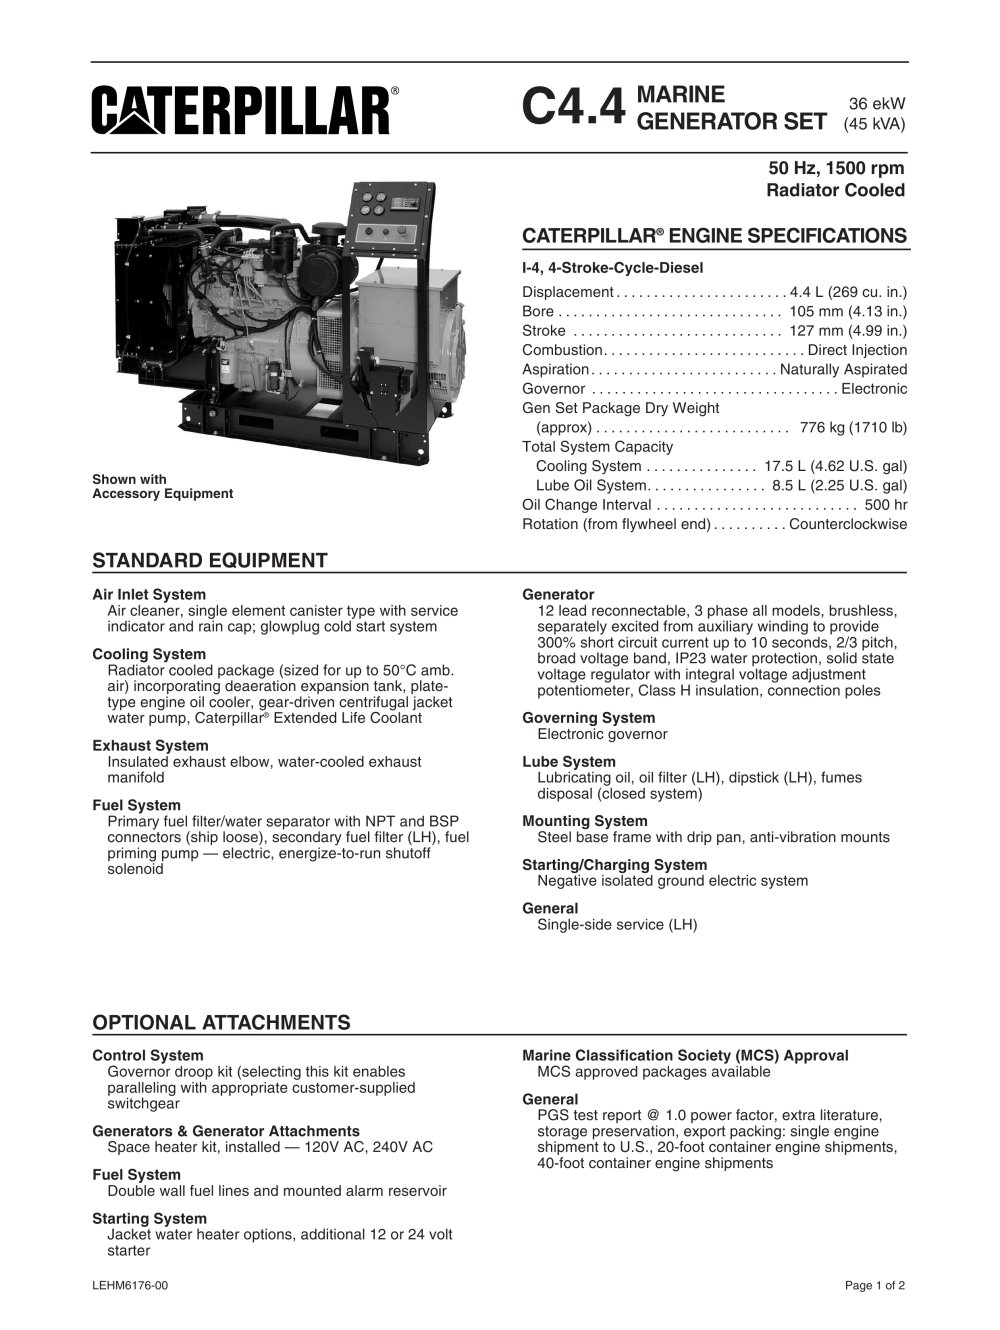 cat c4 4 radiator cooled spec sheets 52919_1b cat c4 4 radiator cooled spec sheets caterpillar marine power RJ45 Wiring-Diagram at panicattacktreatment.co